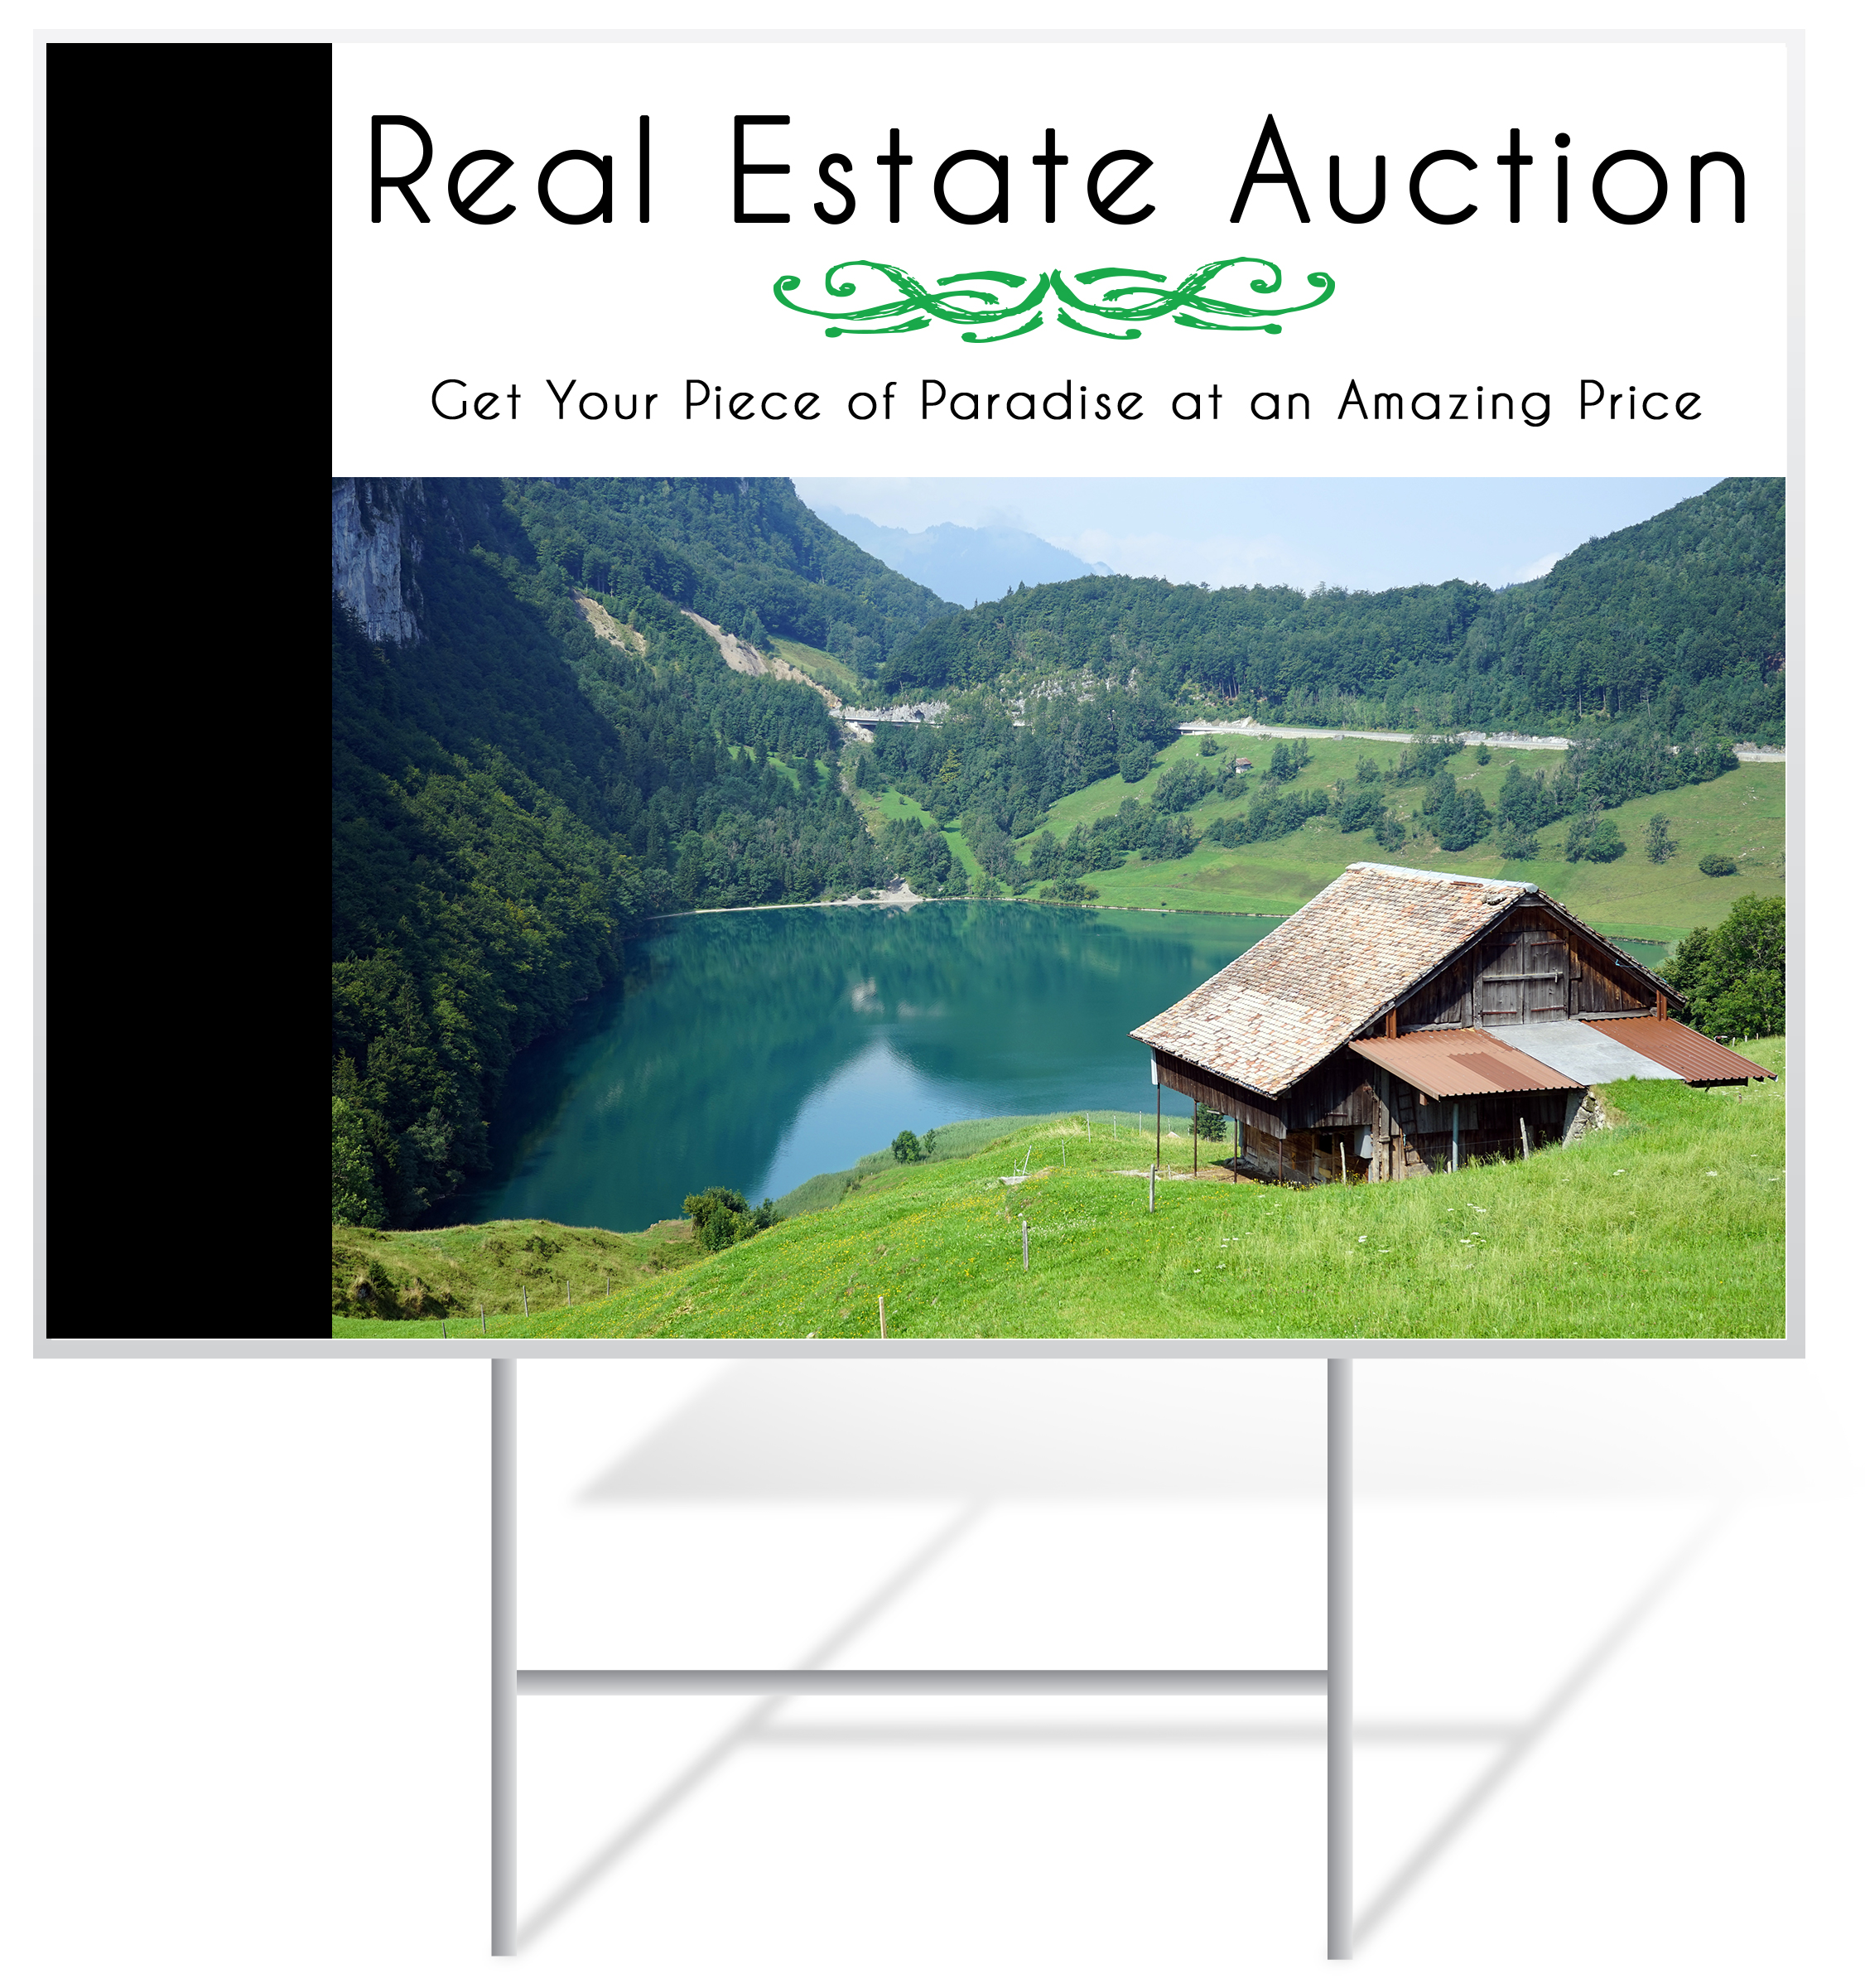 Auction Lawn Sign Example | LawnSigns.com